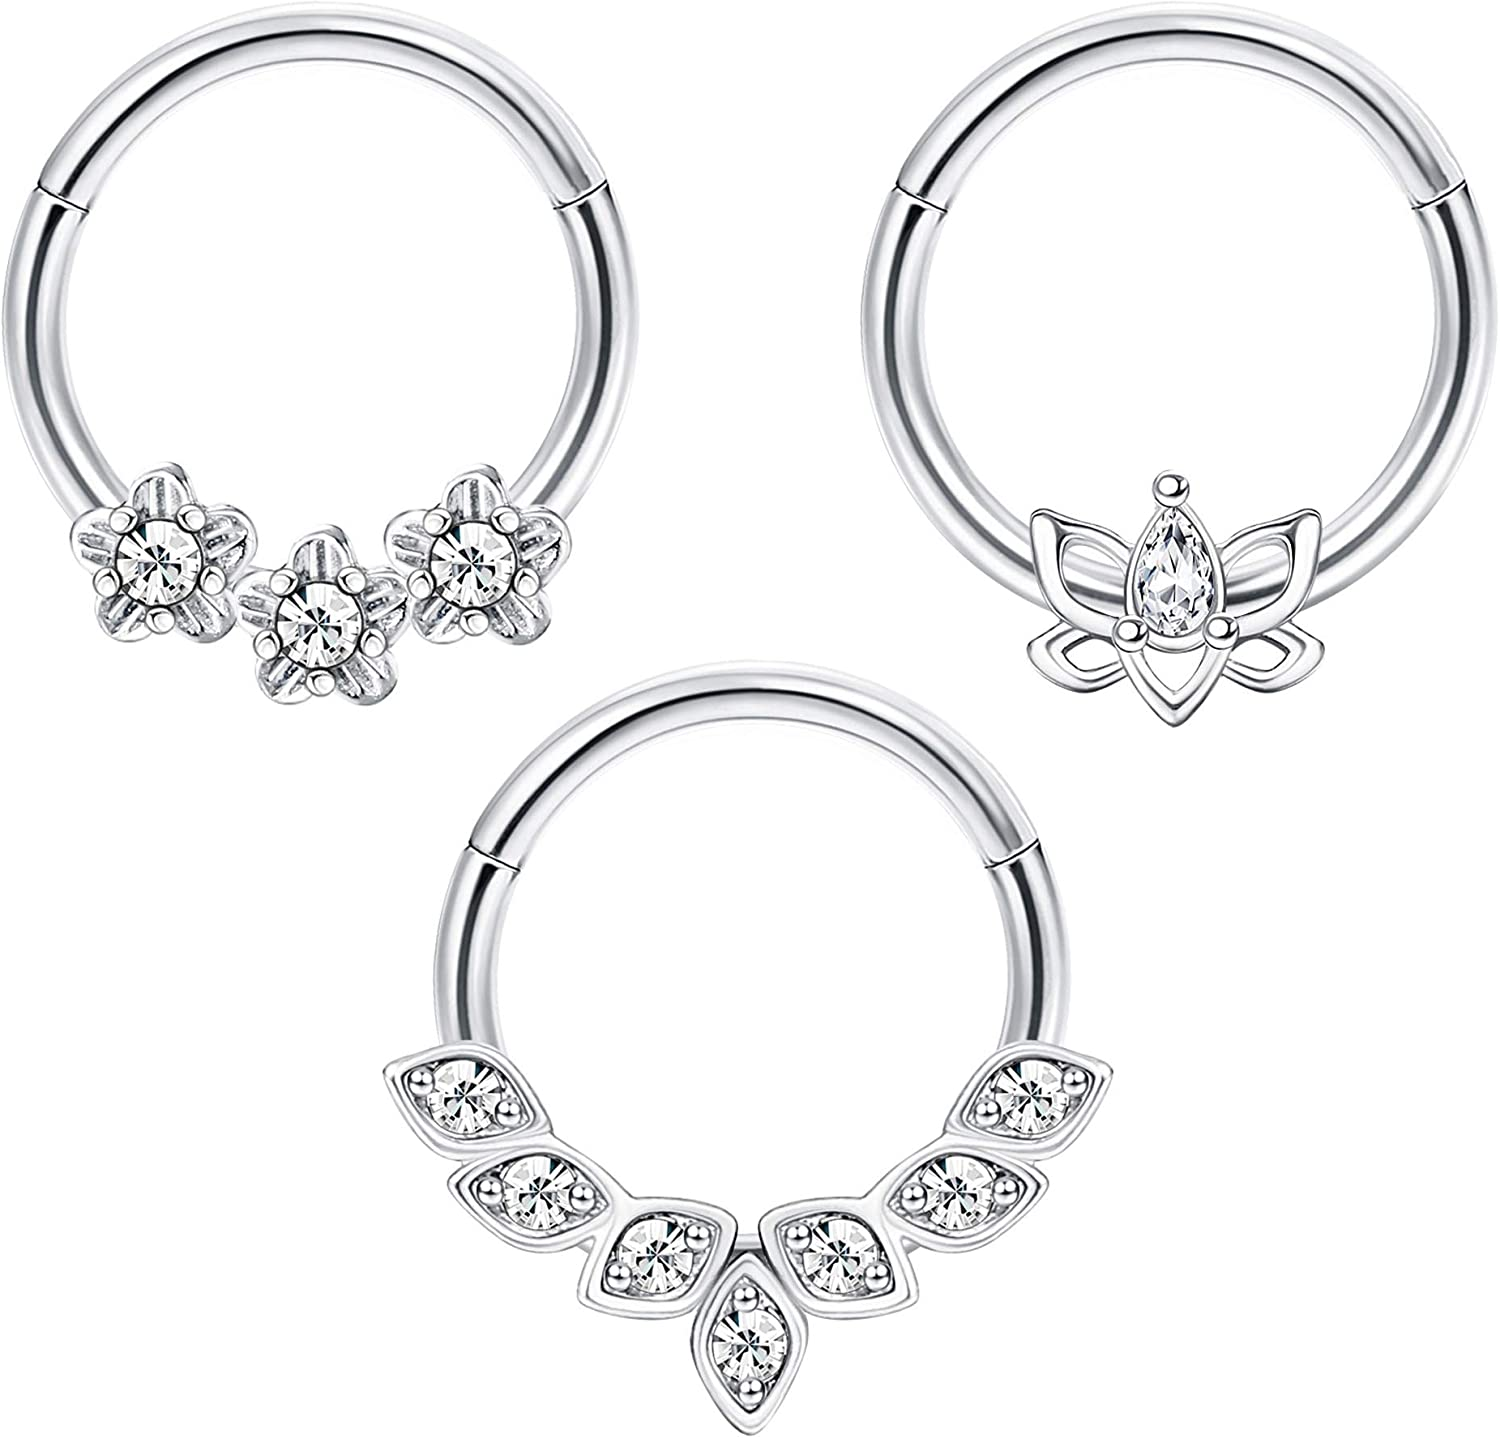 Drperfect Daith Earrings for Women 16G 316L Stainless Steel Nose Cartilage Helix Tragus Rook Earring Hoop Hinged Segment Clicker Septum Ring Piercing Jewelry